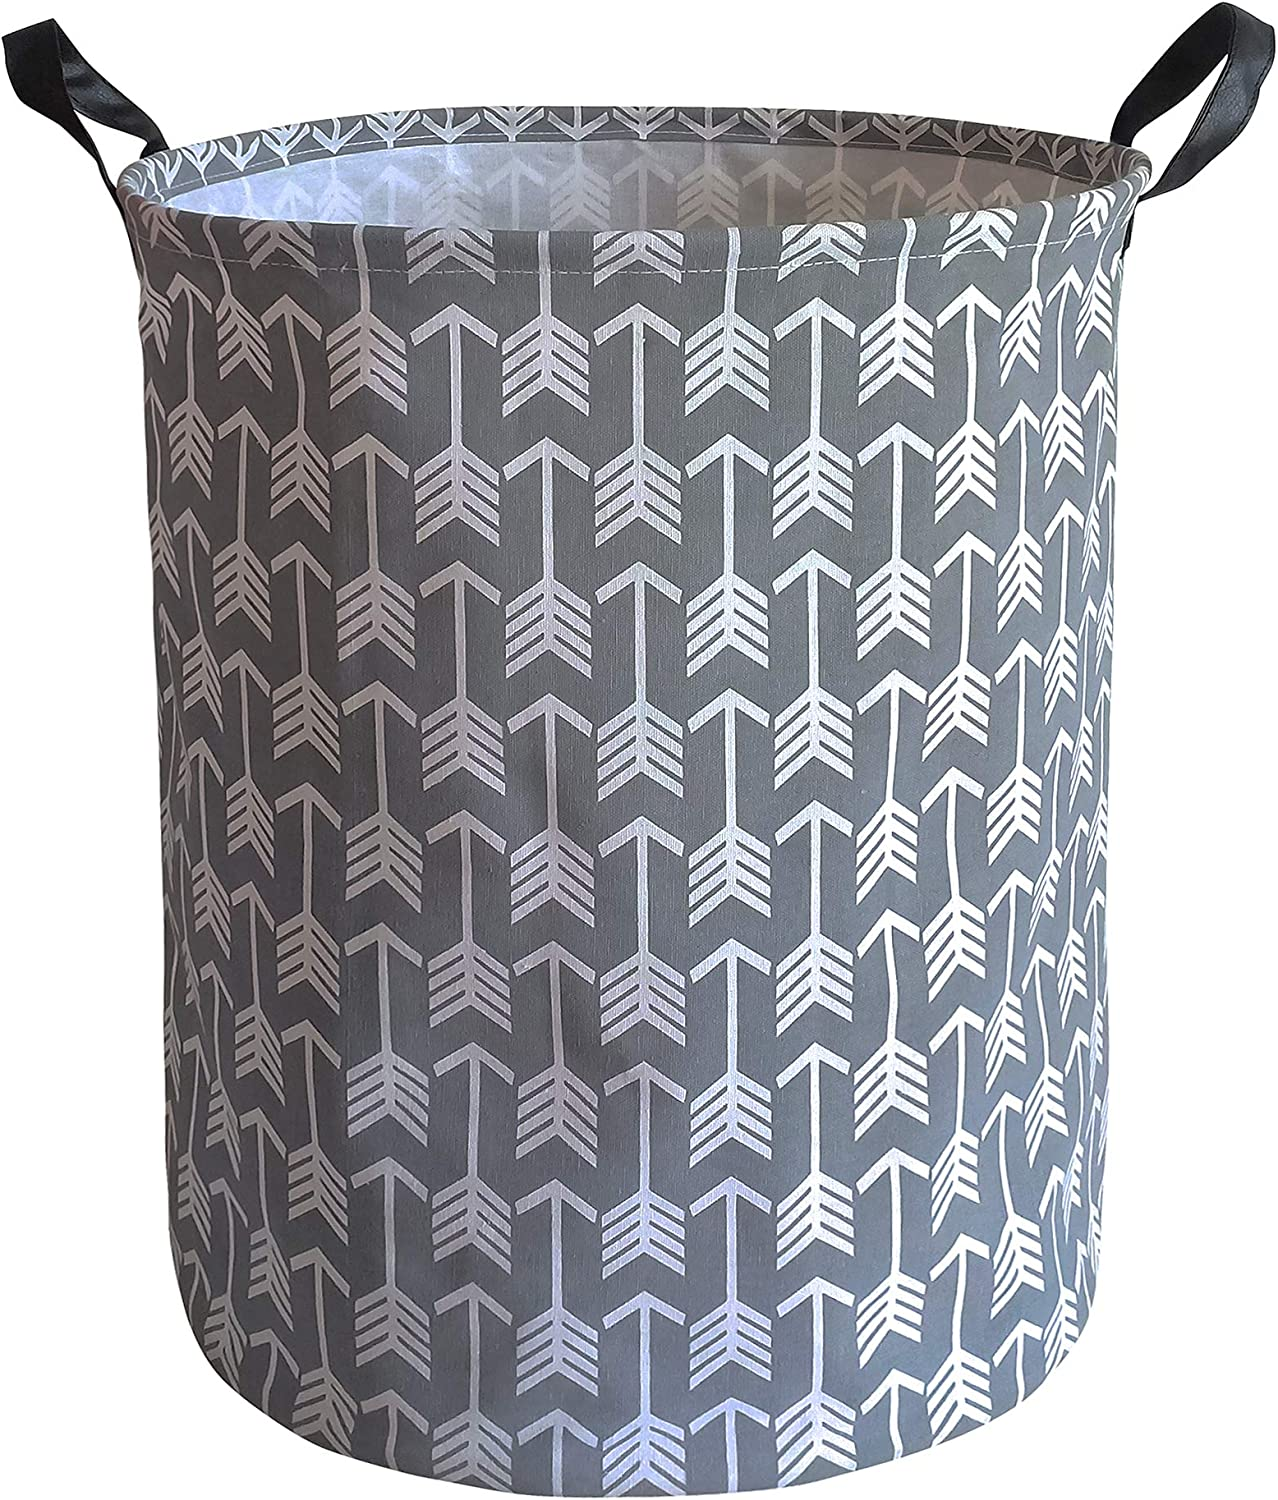 KUNRO Large Sized Storage Basket Waterproof Coating Organizer Bin Laundry Hamper for Nursery Clothes Toys (Gray Arrow)